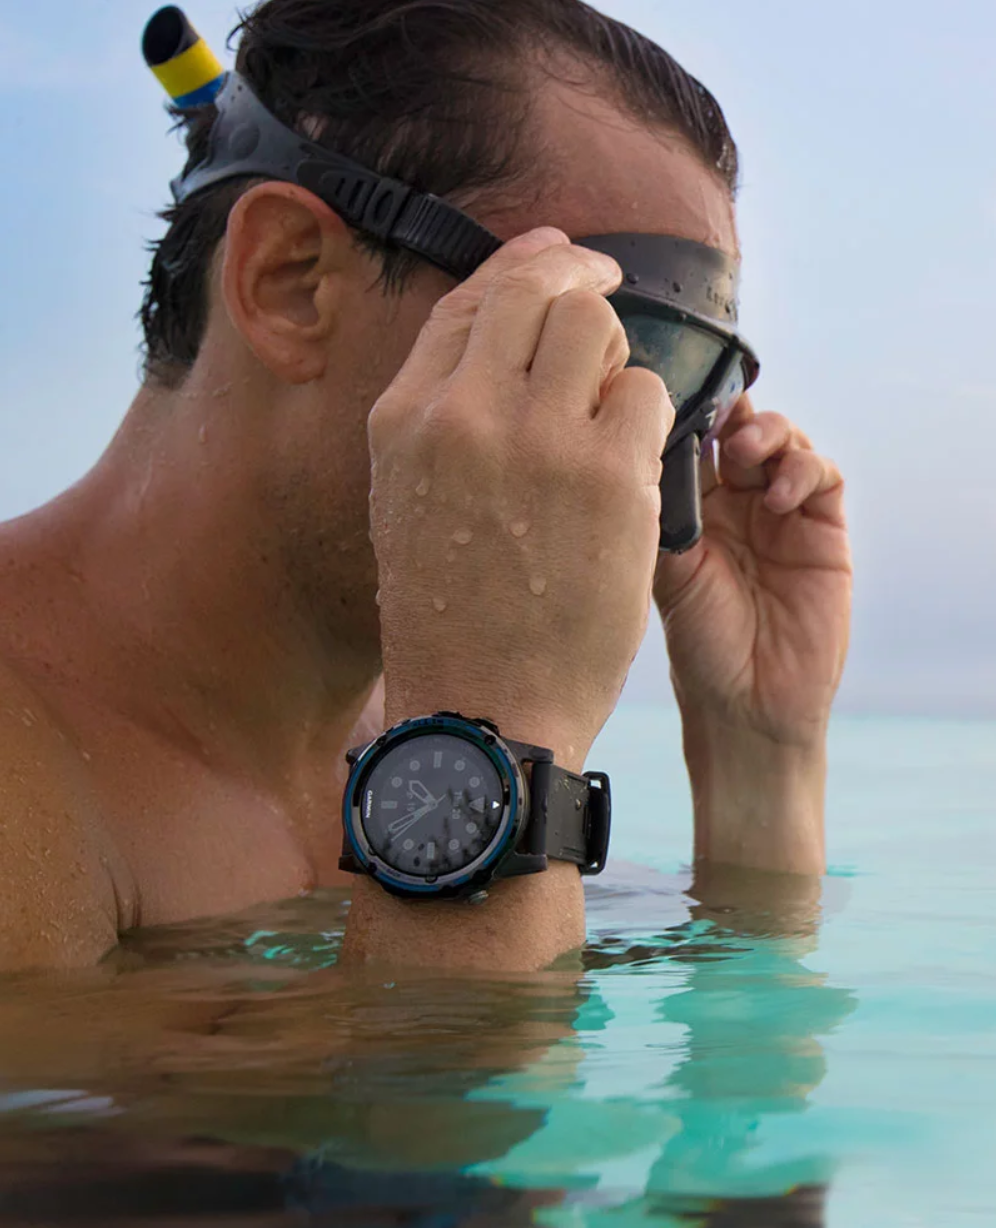 Gamin watches Swim